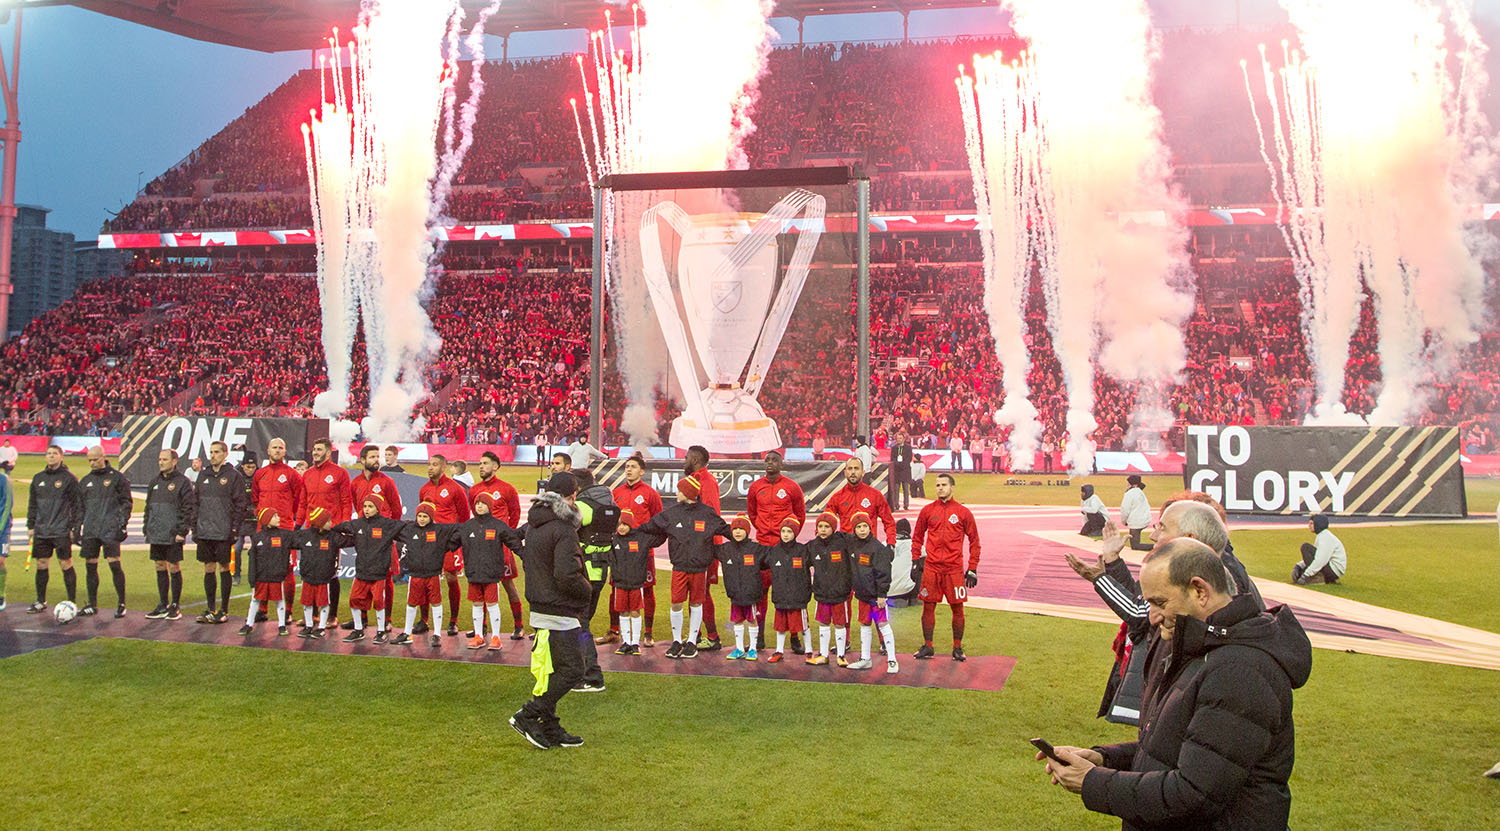 Toronto FC with Don Garber in the foreground as fireworks go off in the background during the opening ceremonies for the 2017 MLS Cup Final.Image by Dennis Marciniak of denMAR Media.